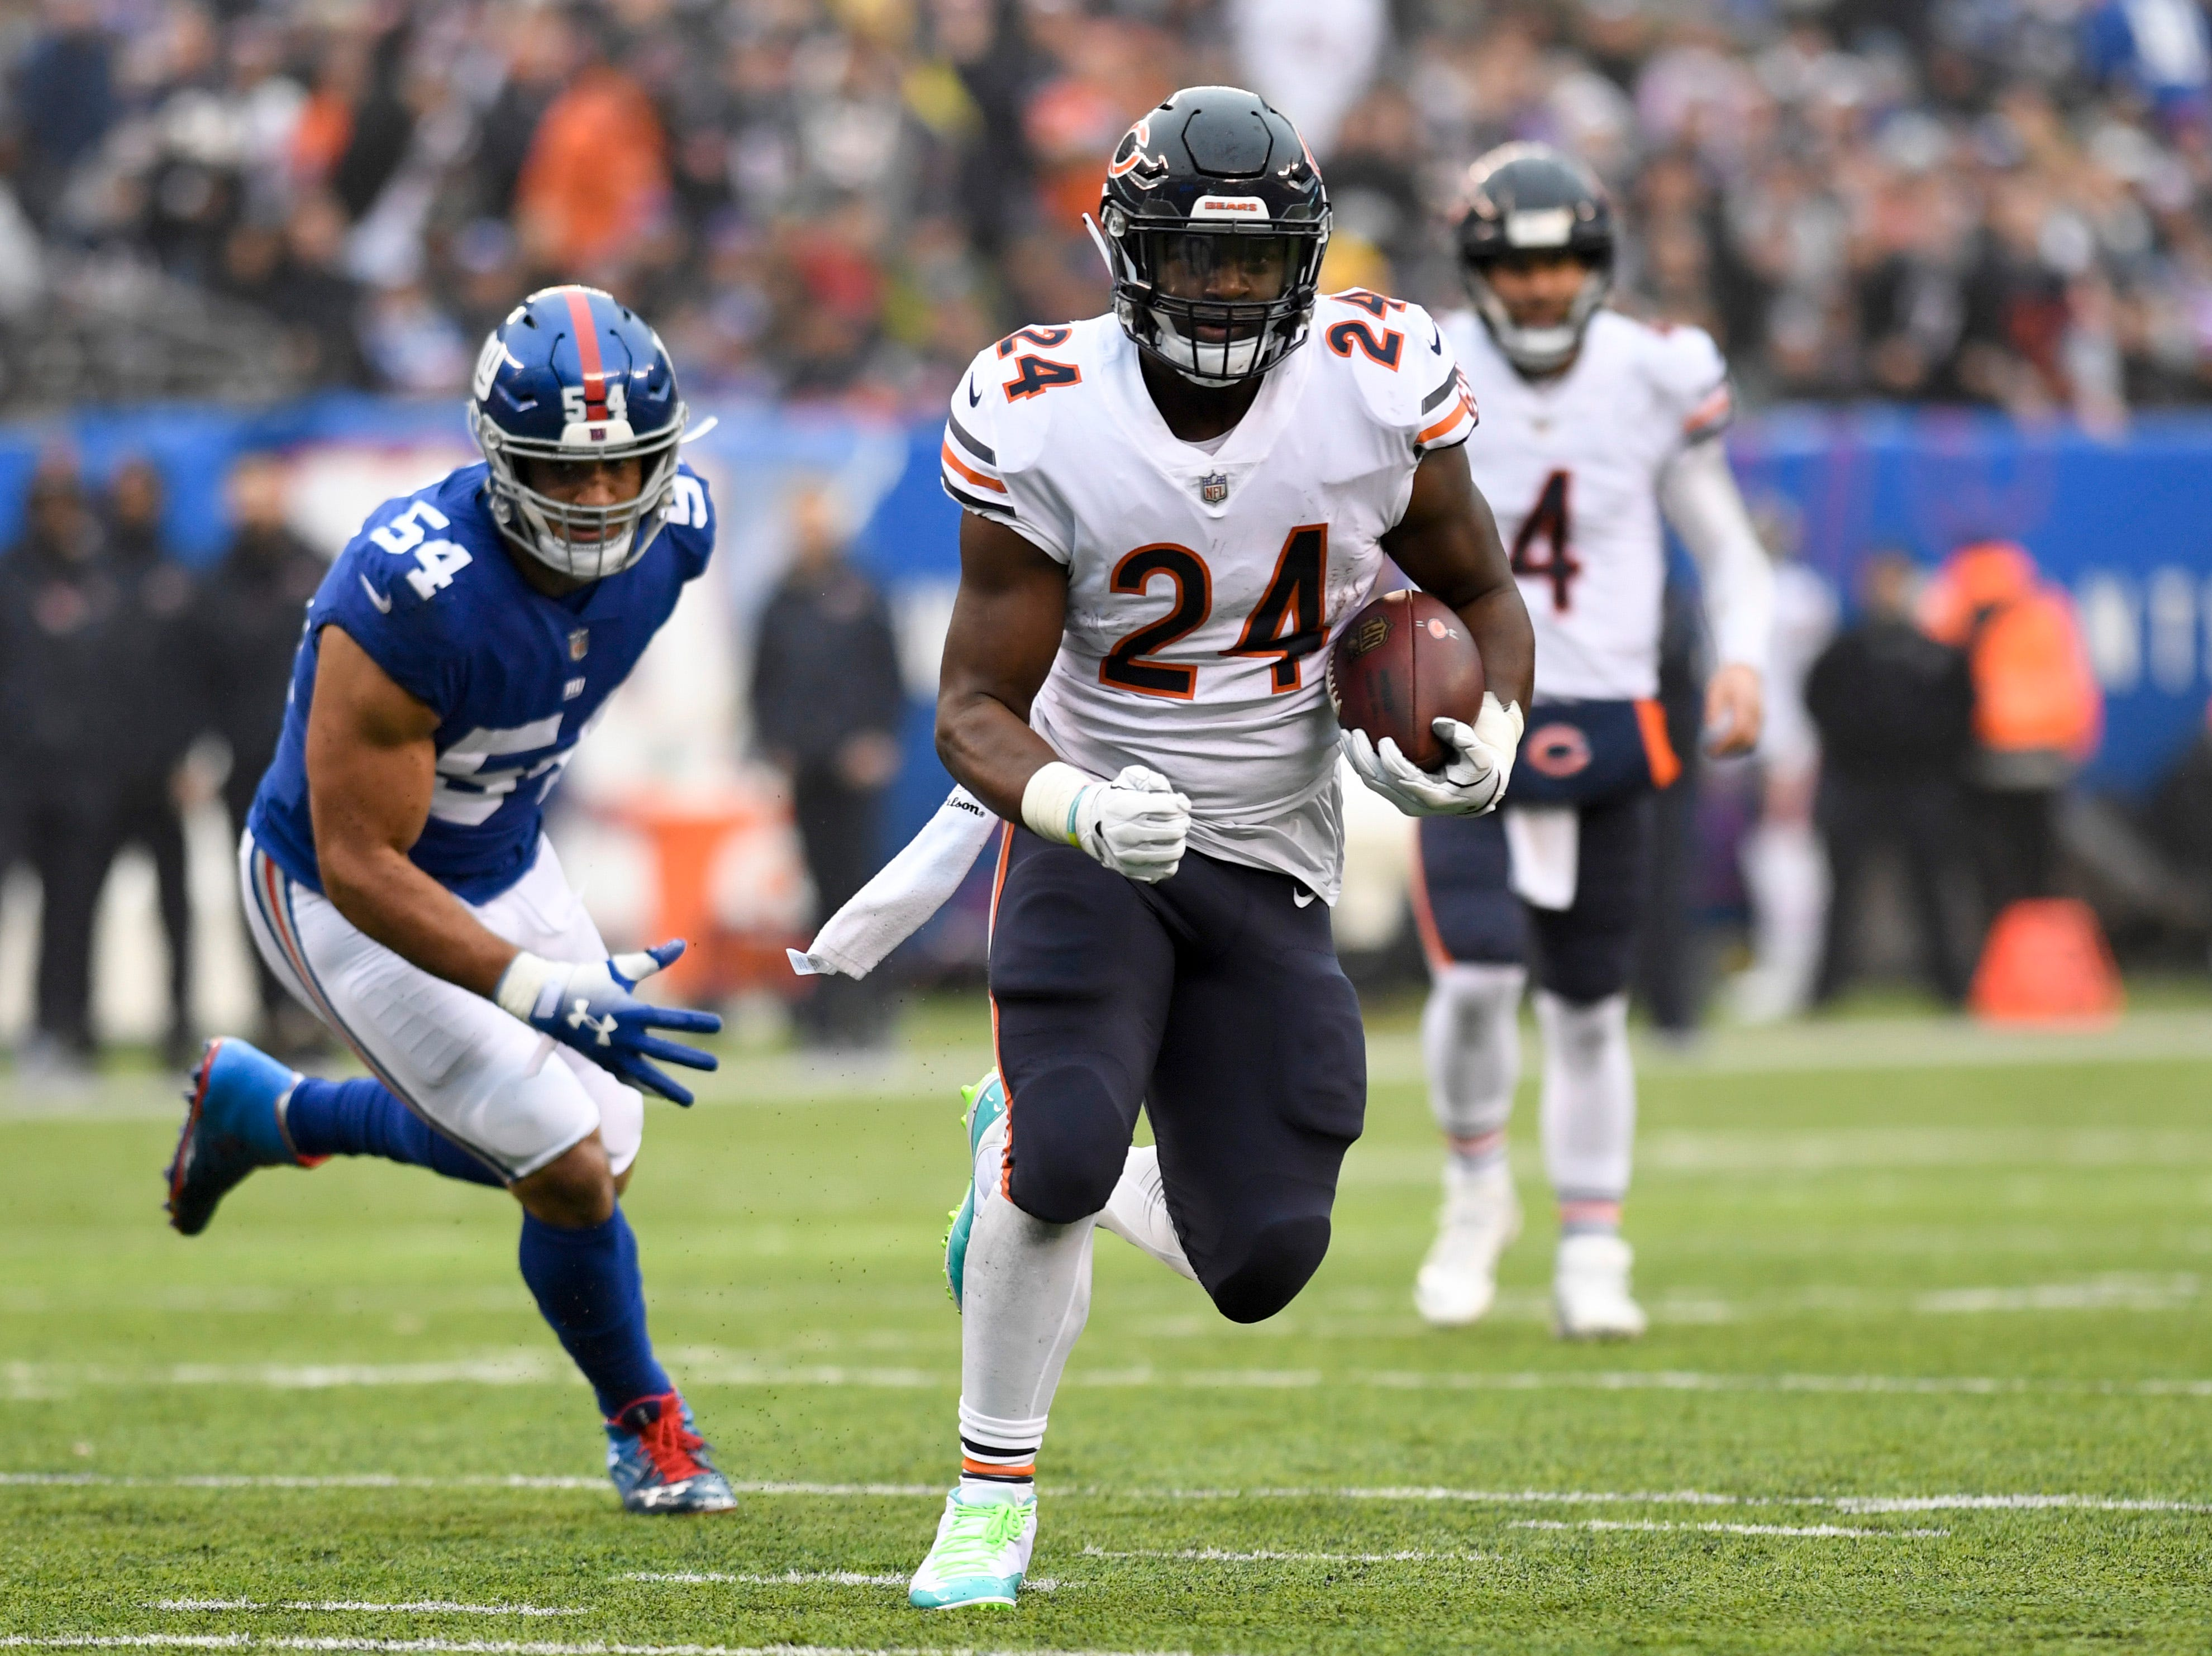 Chicago Bears running back Jordan Howard (24) rushes against the Giants in the first half. The New York Giants face the Chicago Bears on Sunday, Dec. 2, 2018, in East Rutherford.